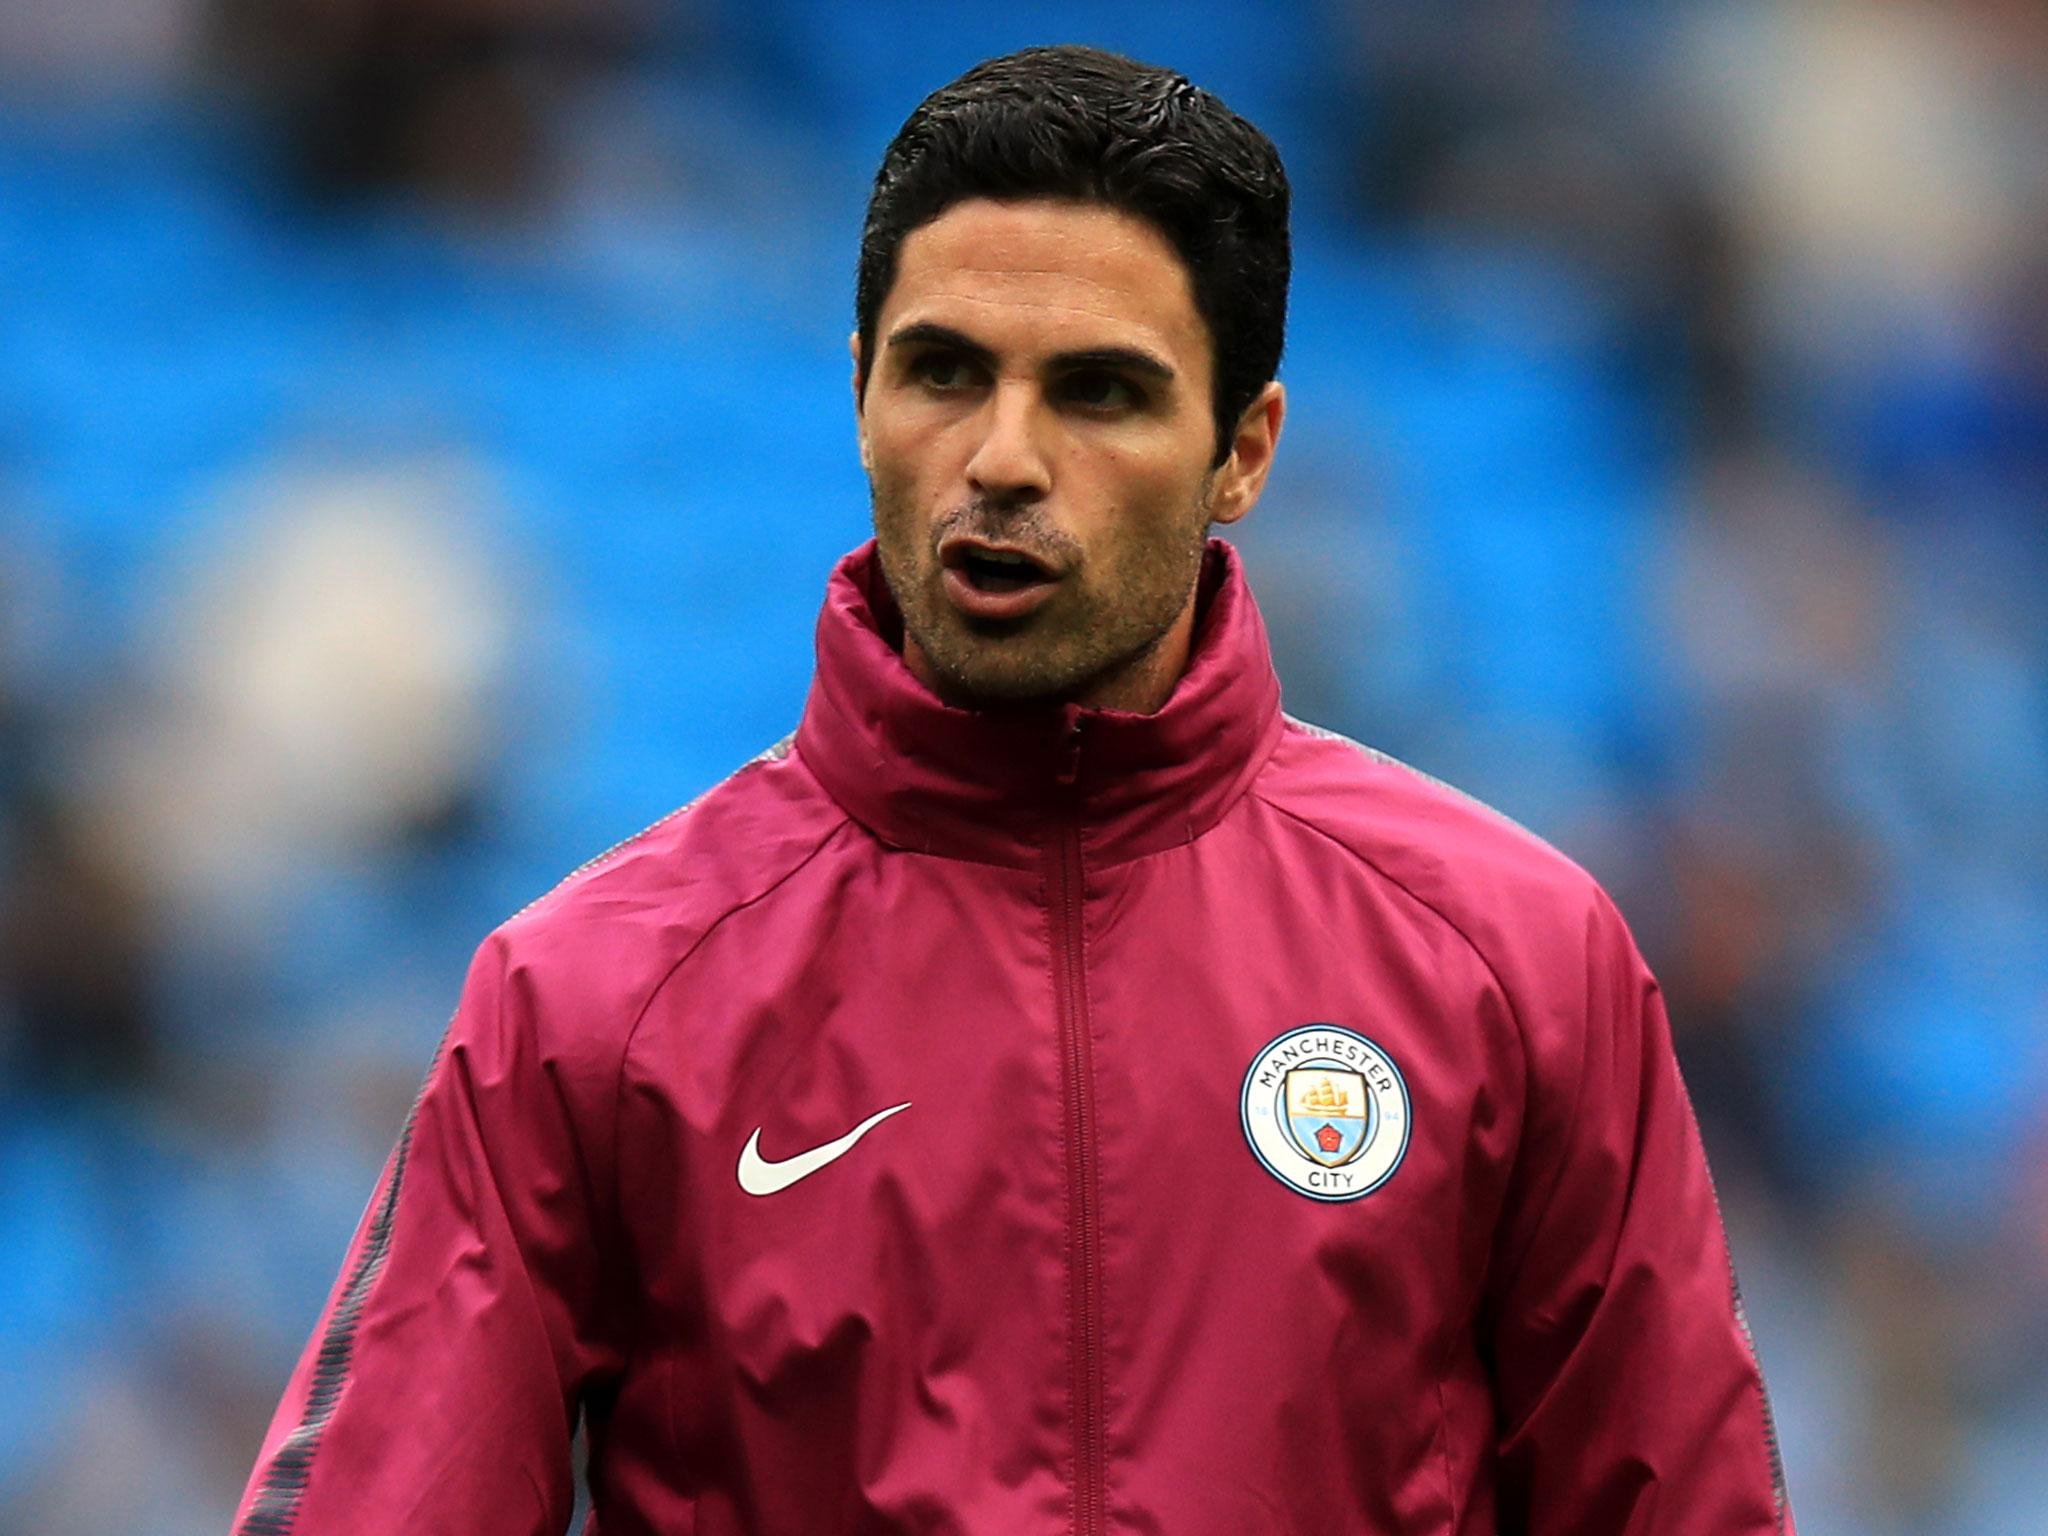 Transfer news, rumours - LIVE: Mikel Arteta to Arsenal latest plus Liverpool, Manchester United, Spurs and more